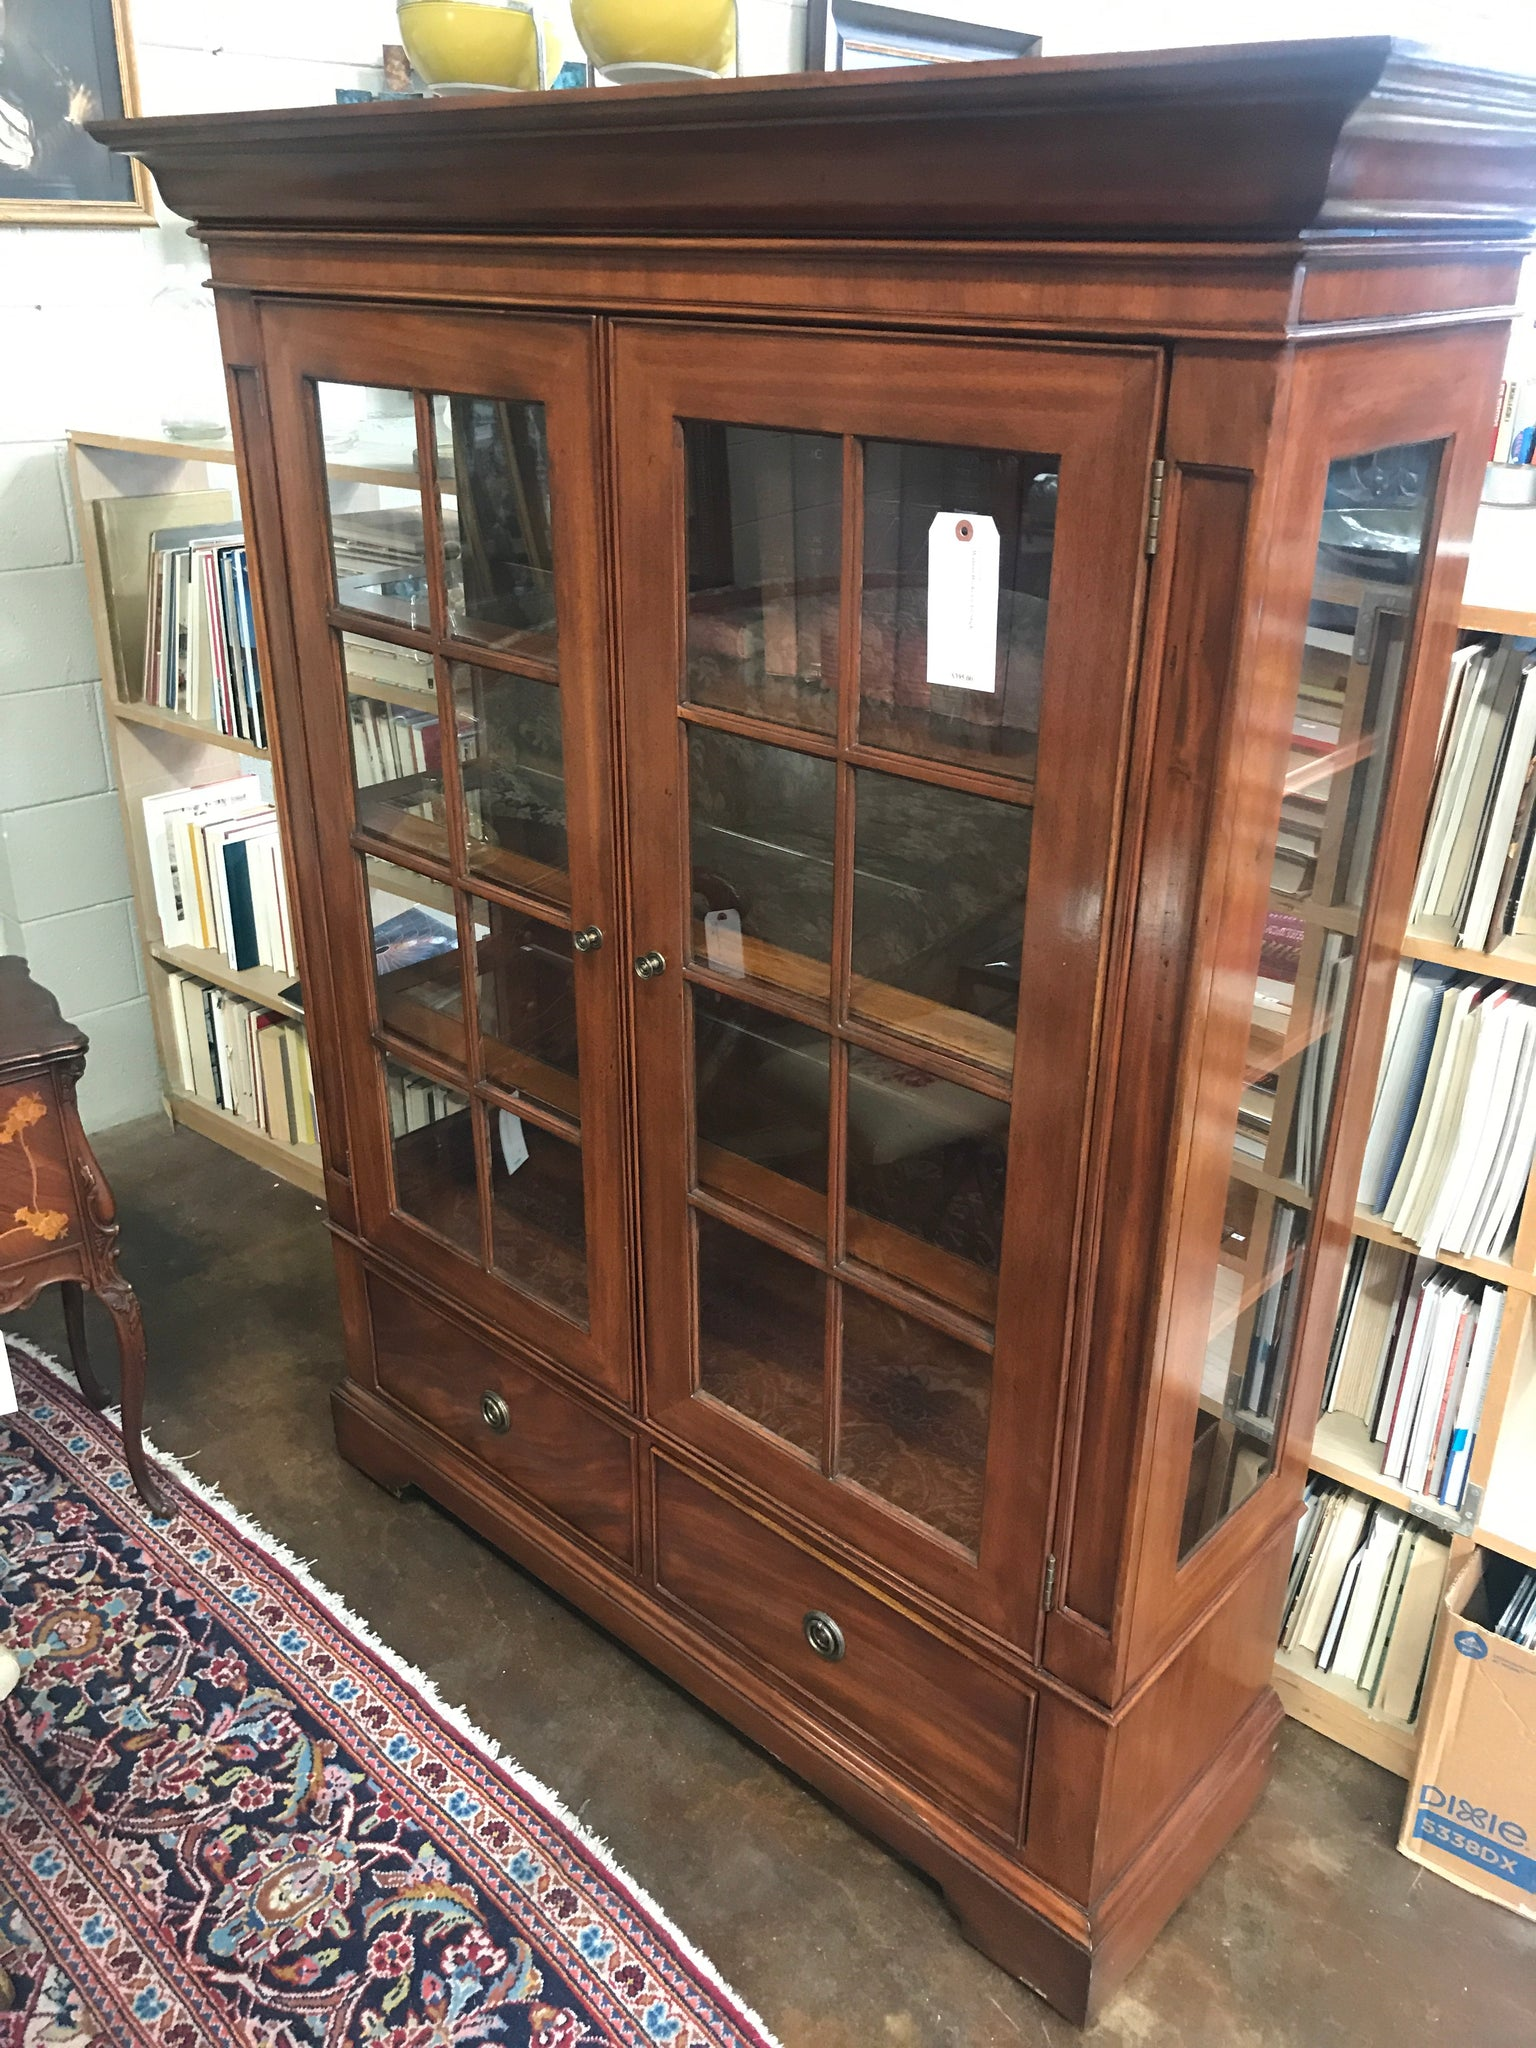 Walnut 2 door bookcase by Sligh